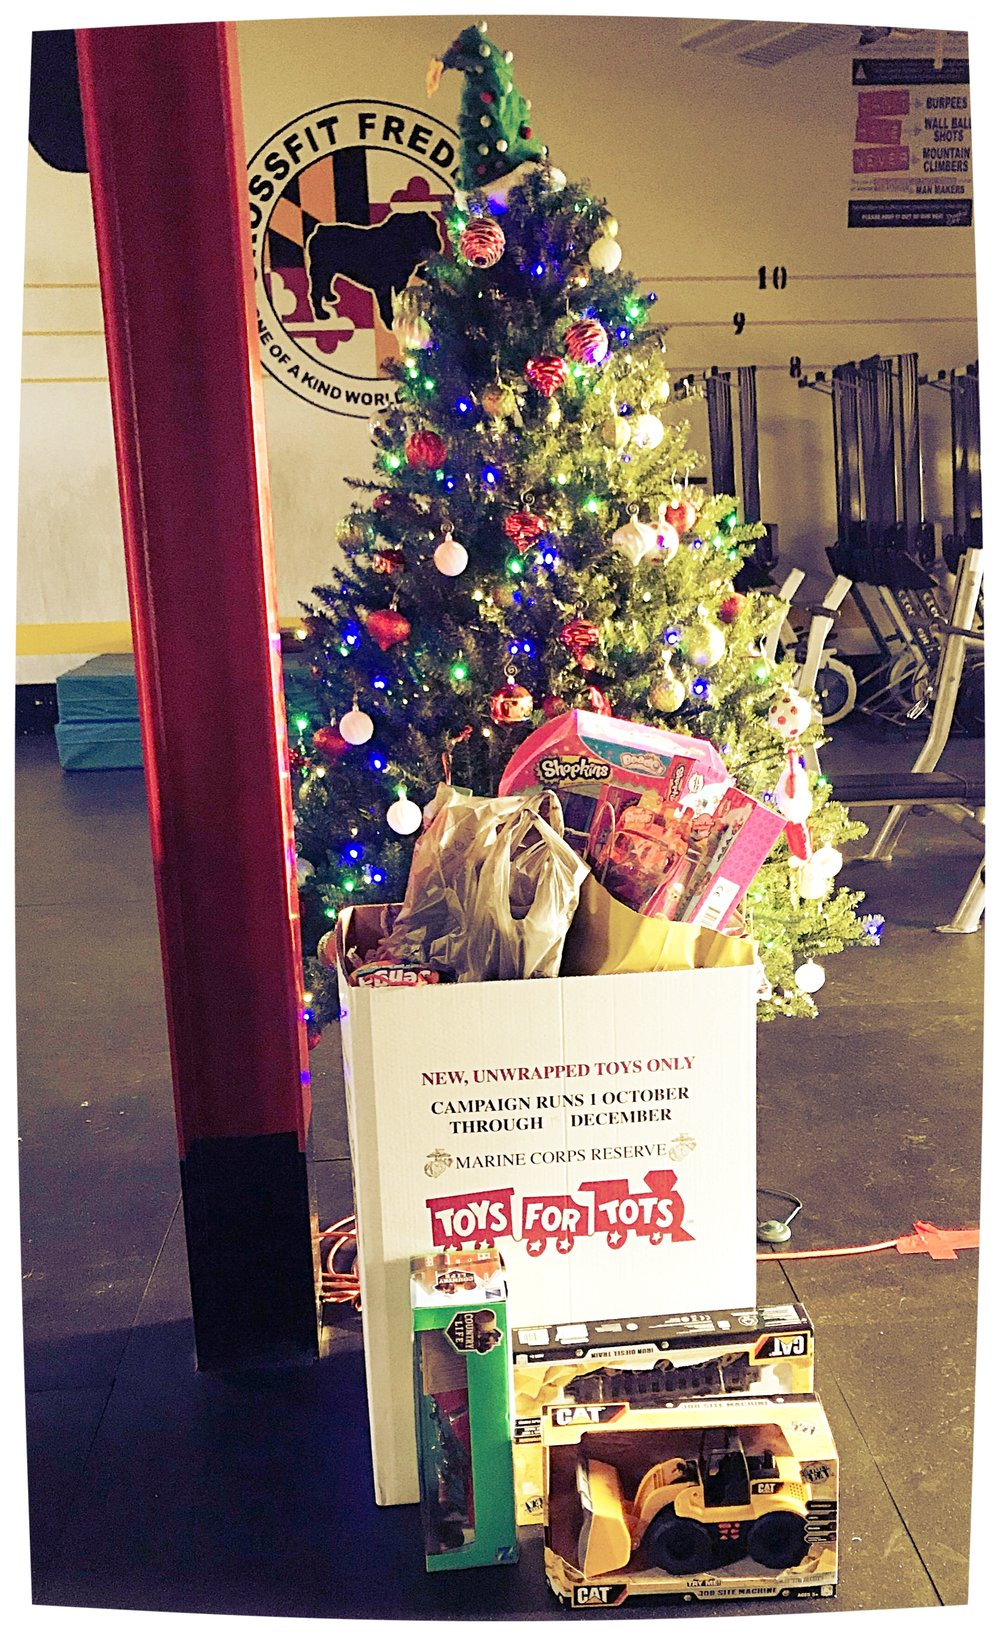 The box is beginning to overflow!Only 2 days remaining to donate to our Toys for Tots campaign!!! Deadline is December 14th at 8PM.